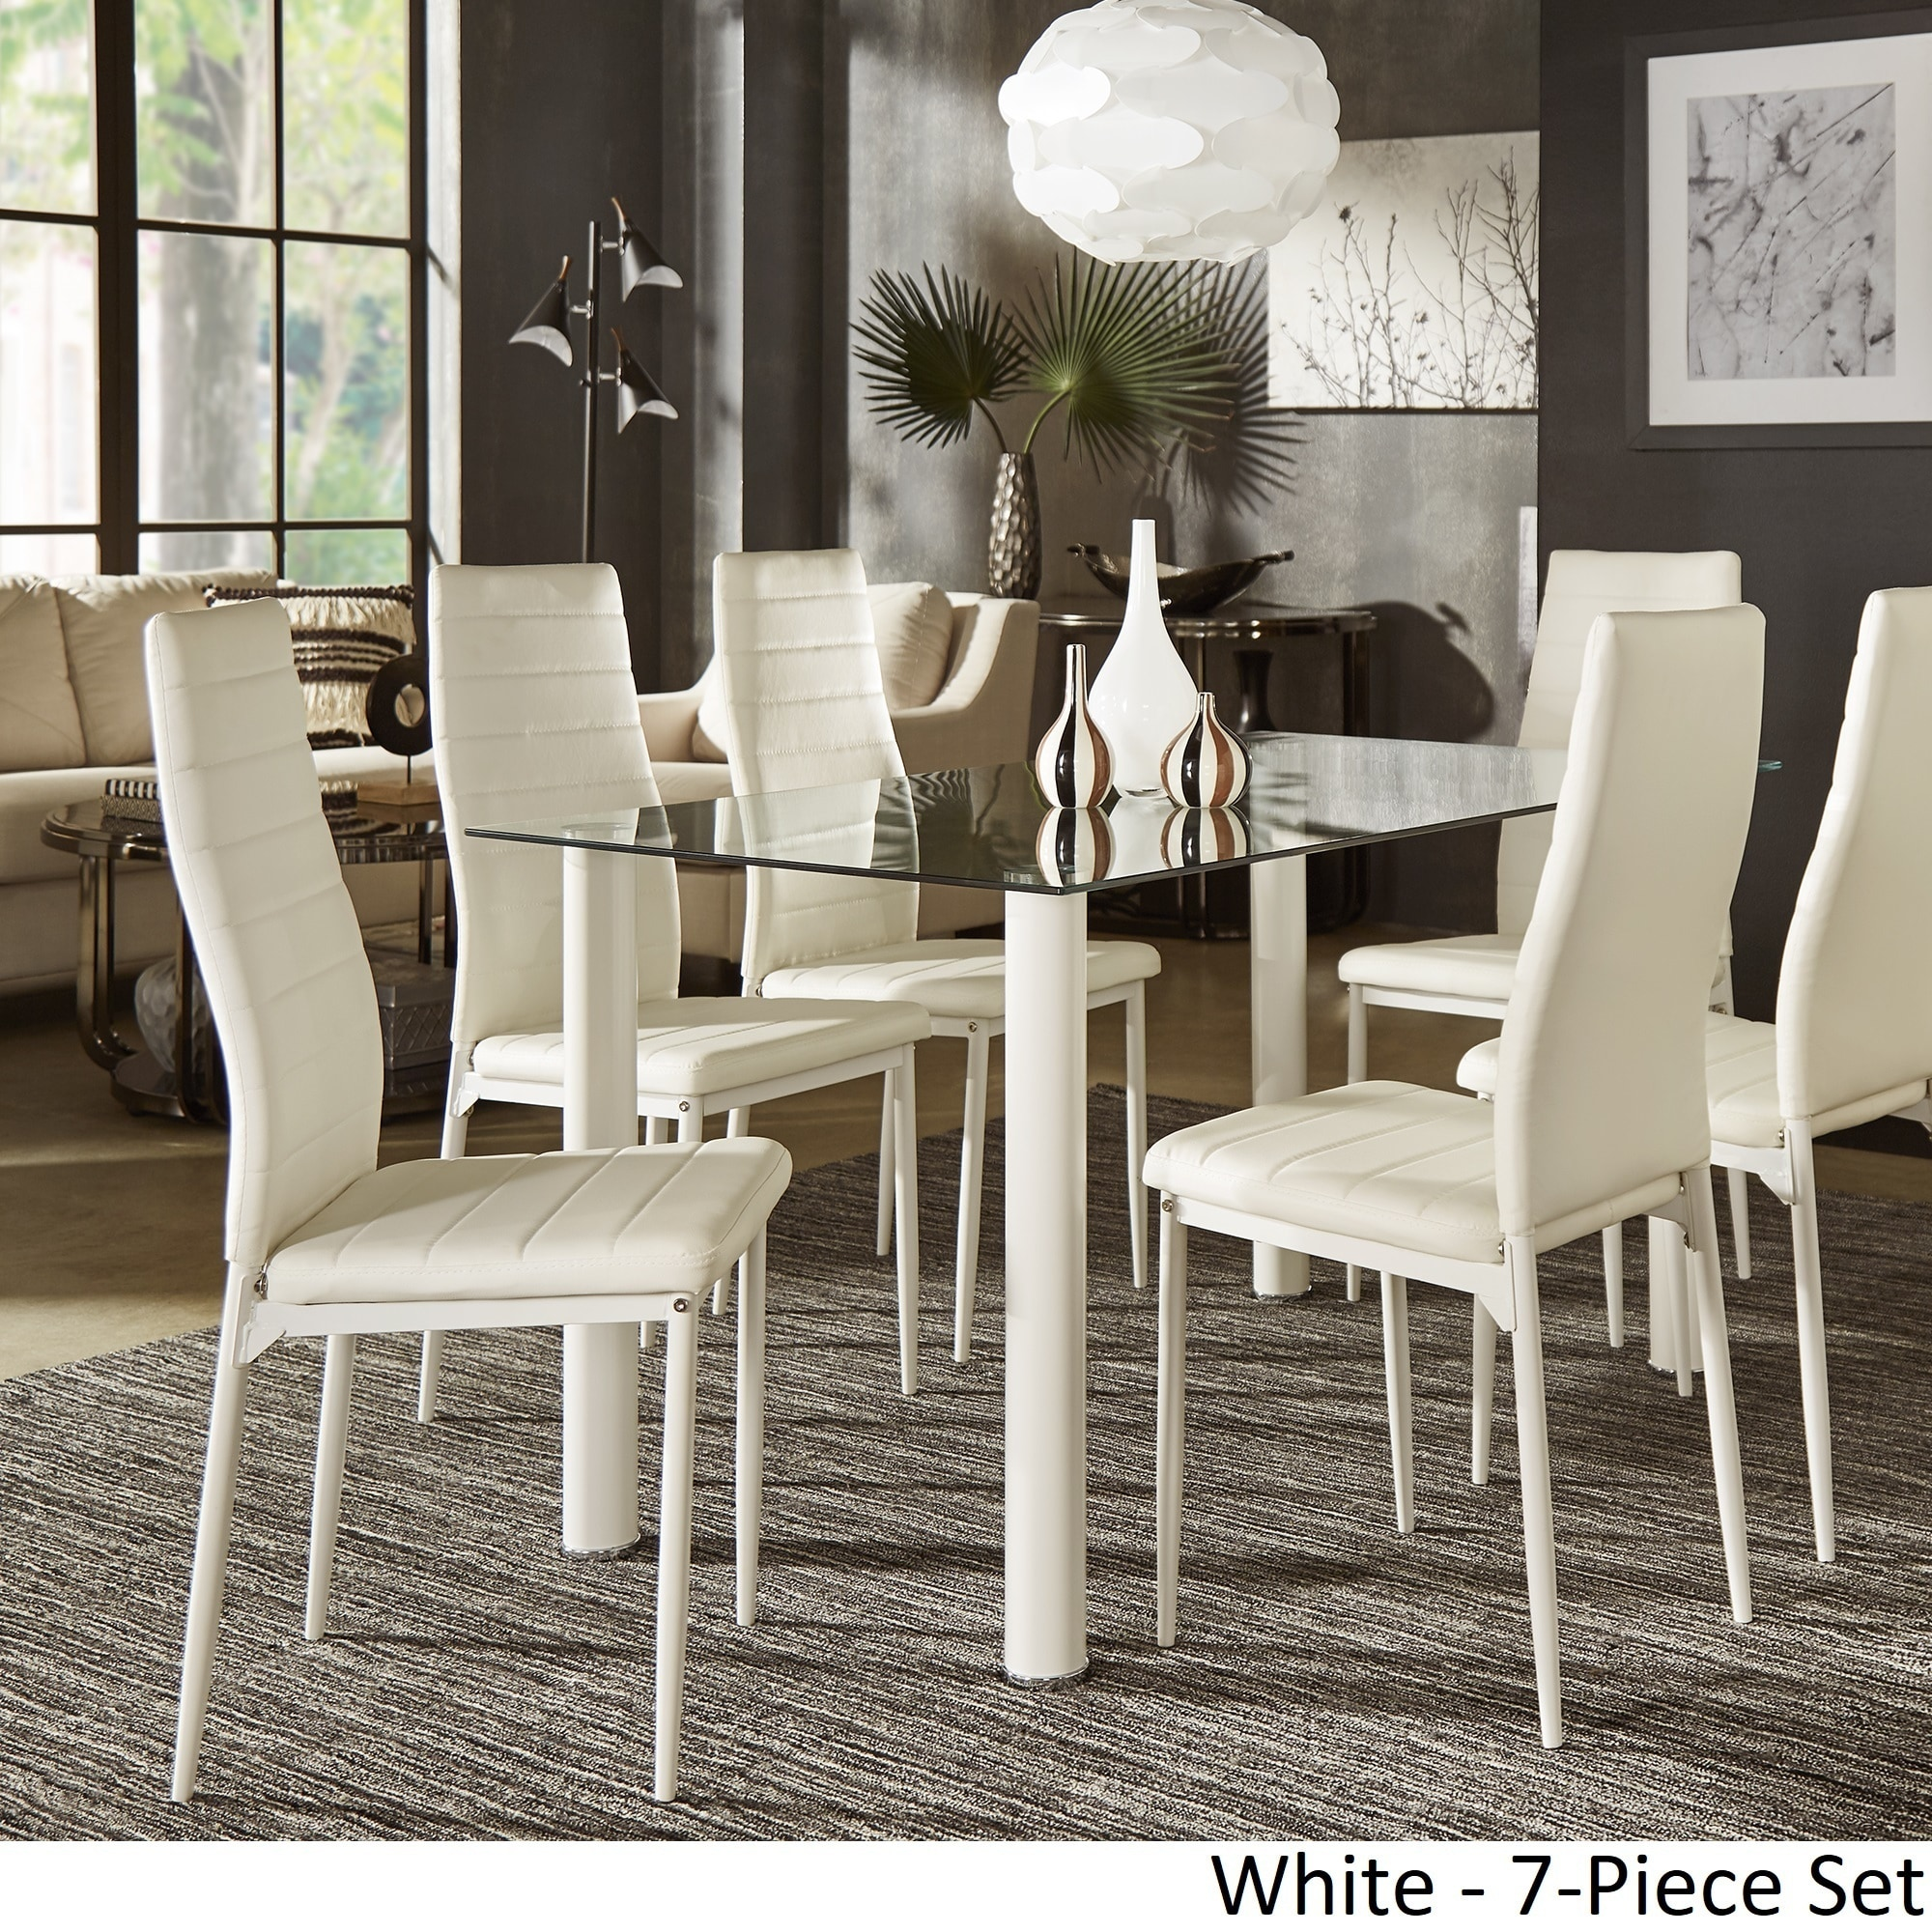 Shop Milo Contemporary Metal And Glass Dining Set   Faux Leather Chairs By  INSPIRE Q Bold   Free Shipping Today   Overstock.com   18519114